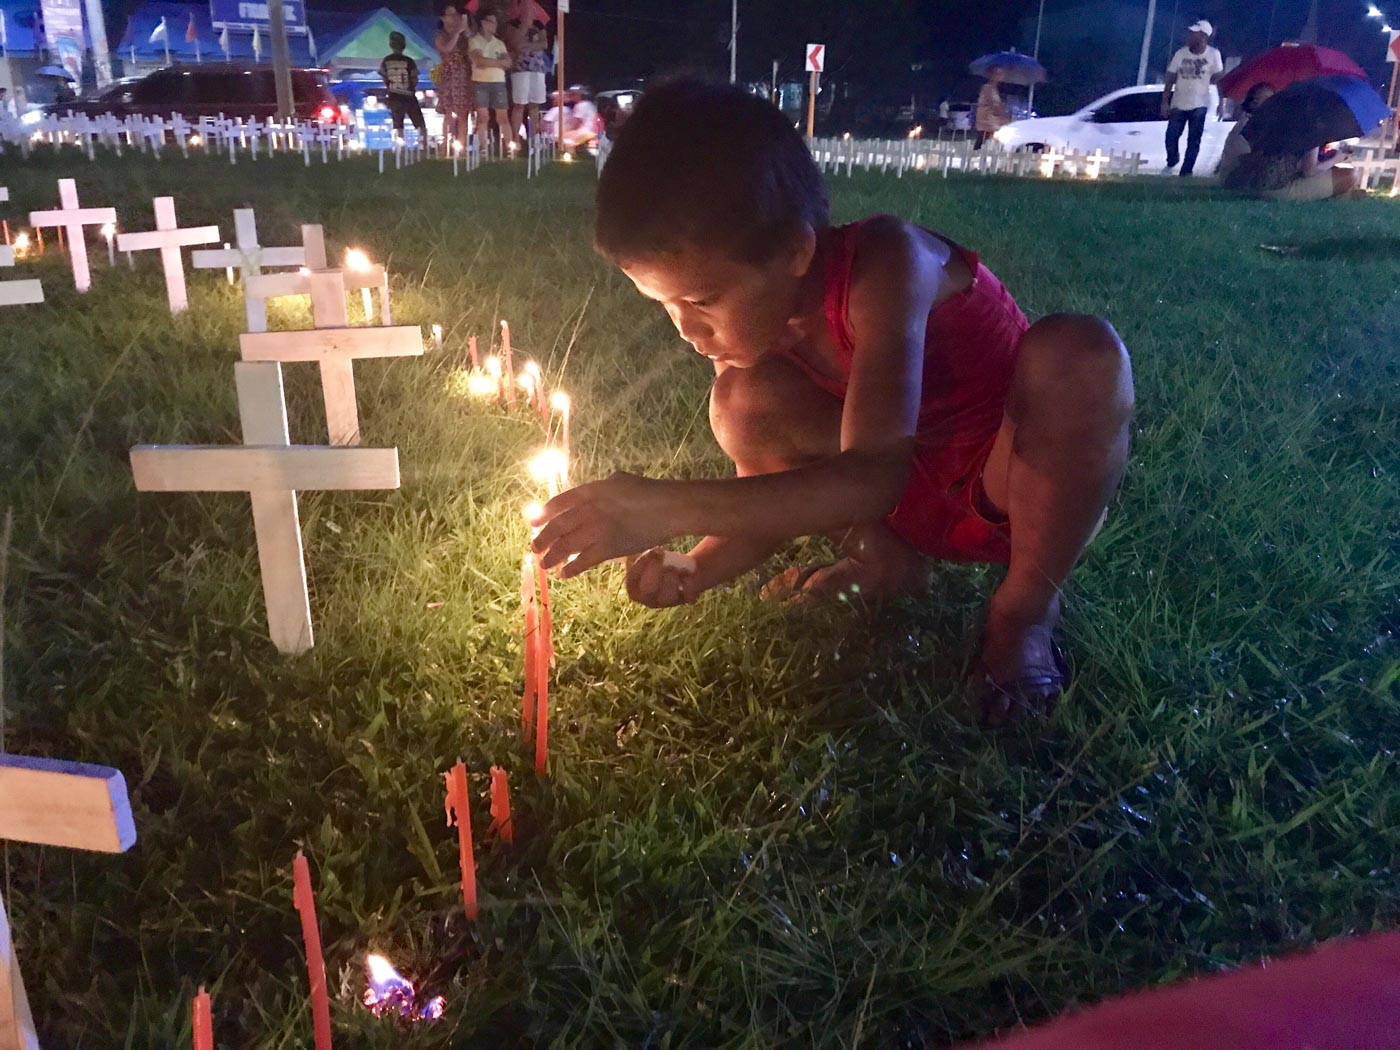 REMEMBERING. A child lights a candle to remember those who died during the disaster. Photo by Jene-Anne Pangue